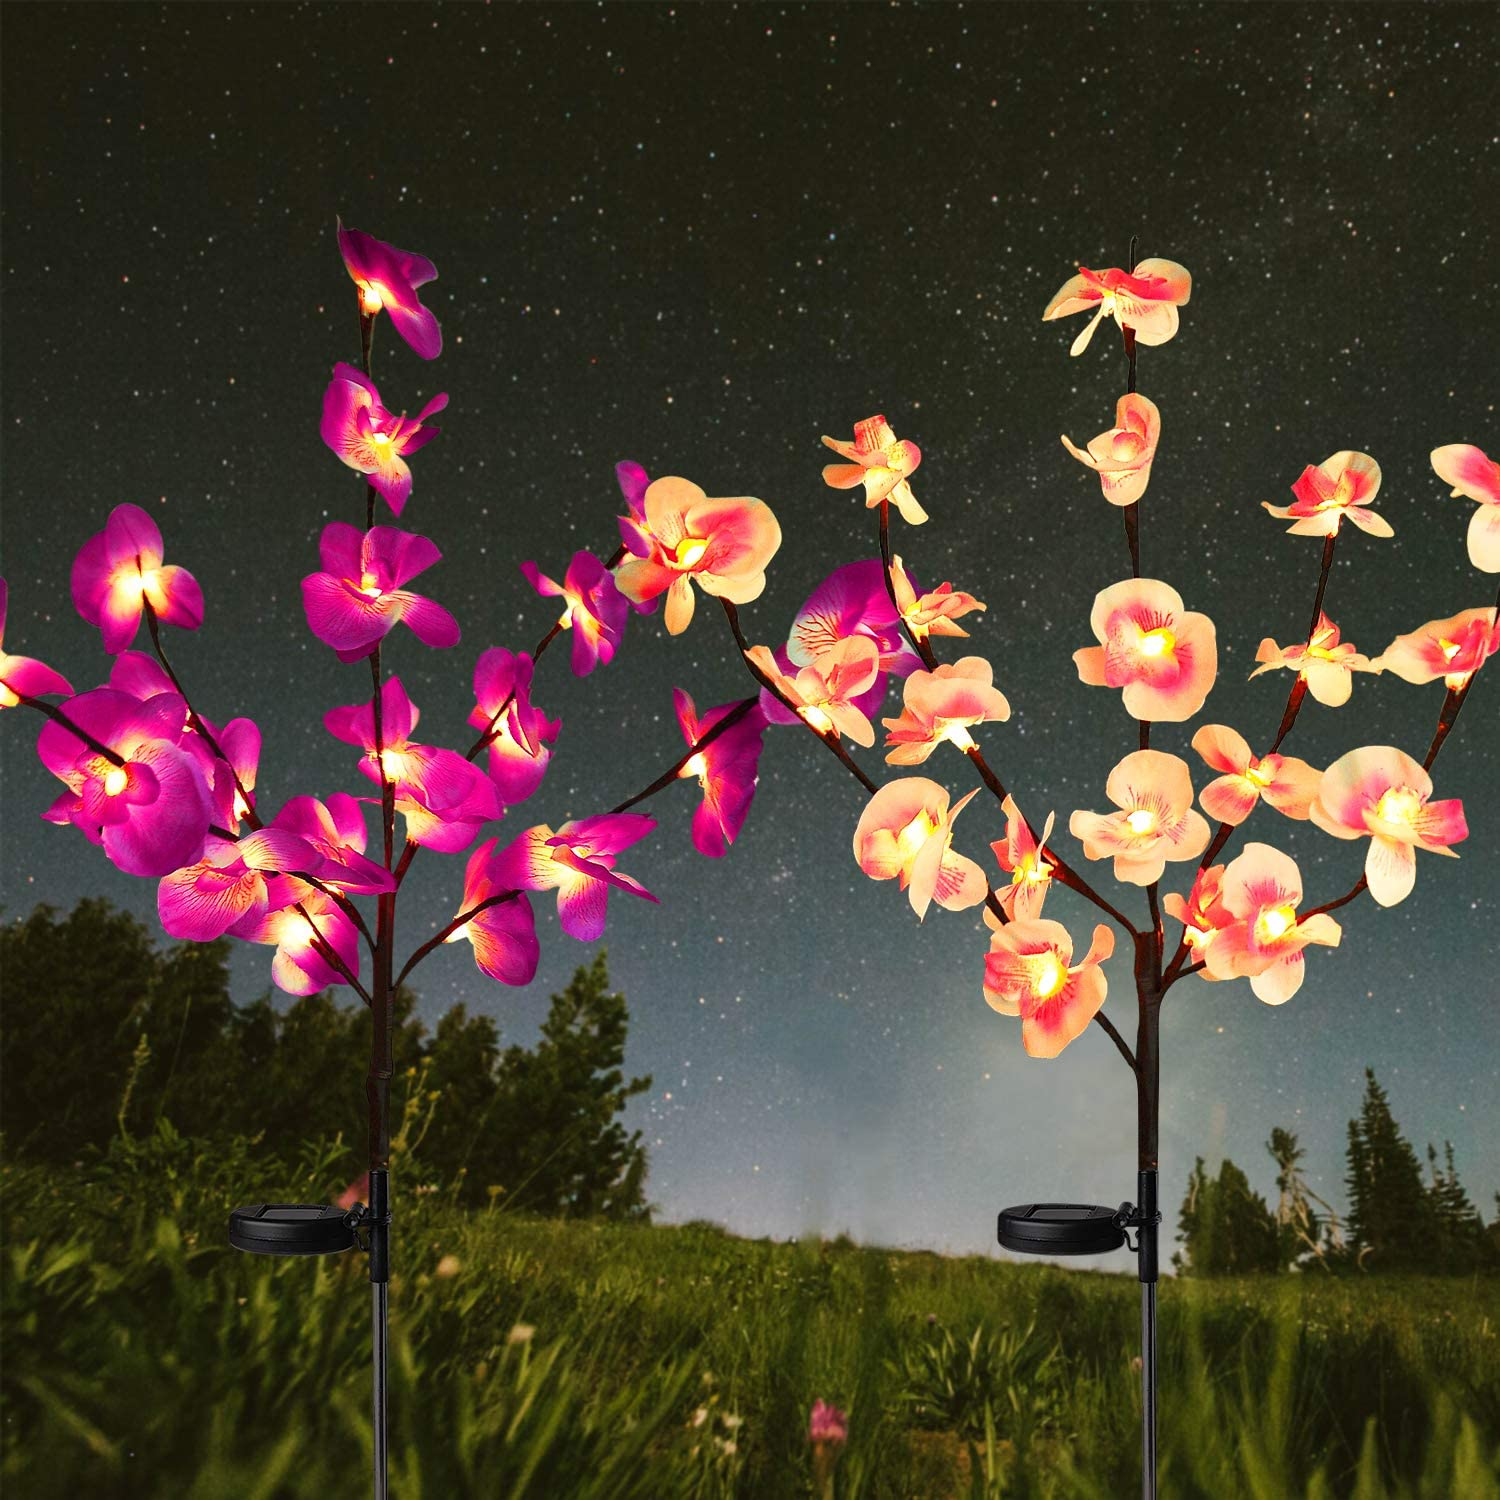 HeyMate Solar Garden Lights Outdoor Decorative- 2 Pack Solar Orchid Flower Lights for Garden,Patio,Backyard(Purple & Pink)